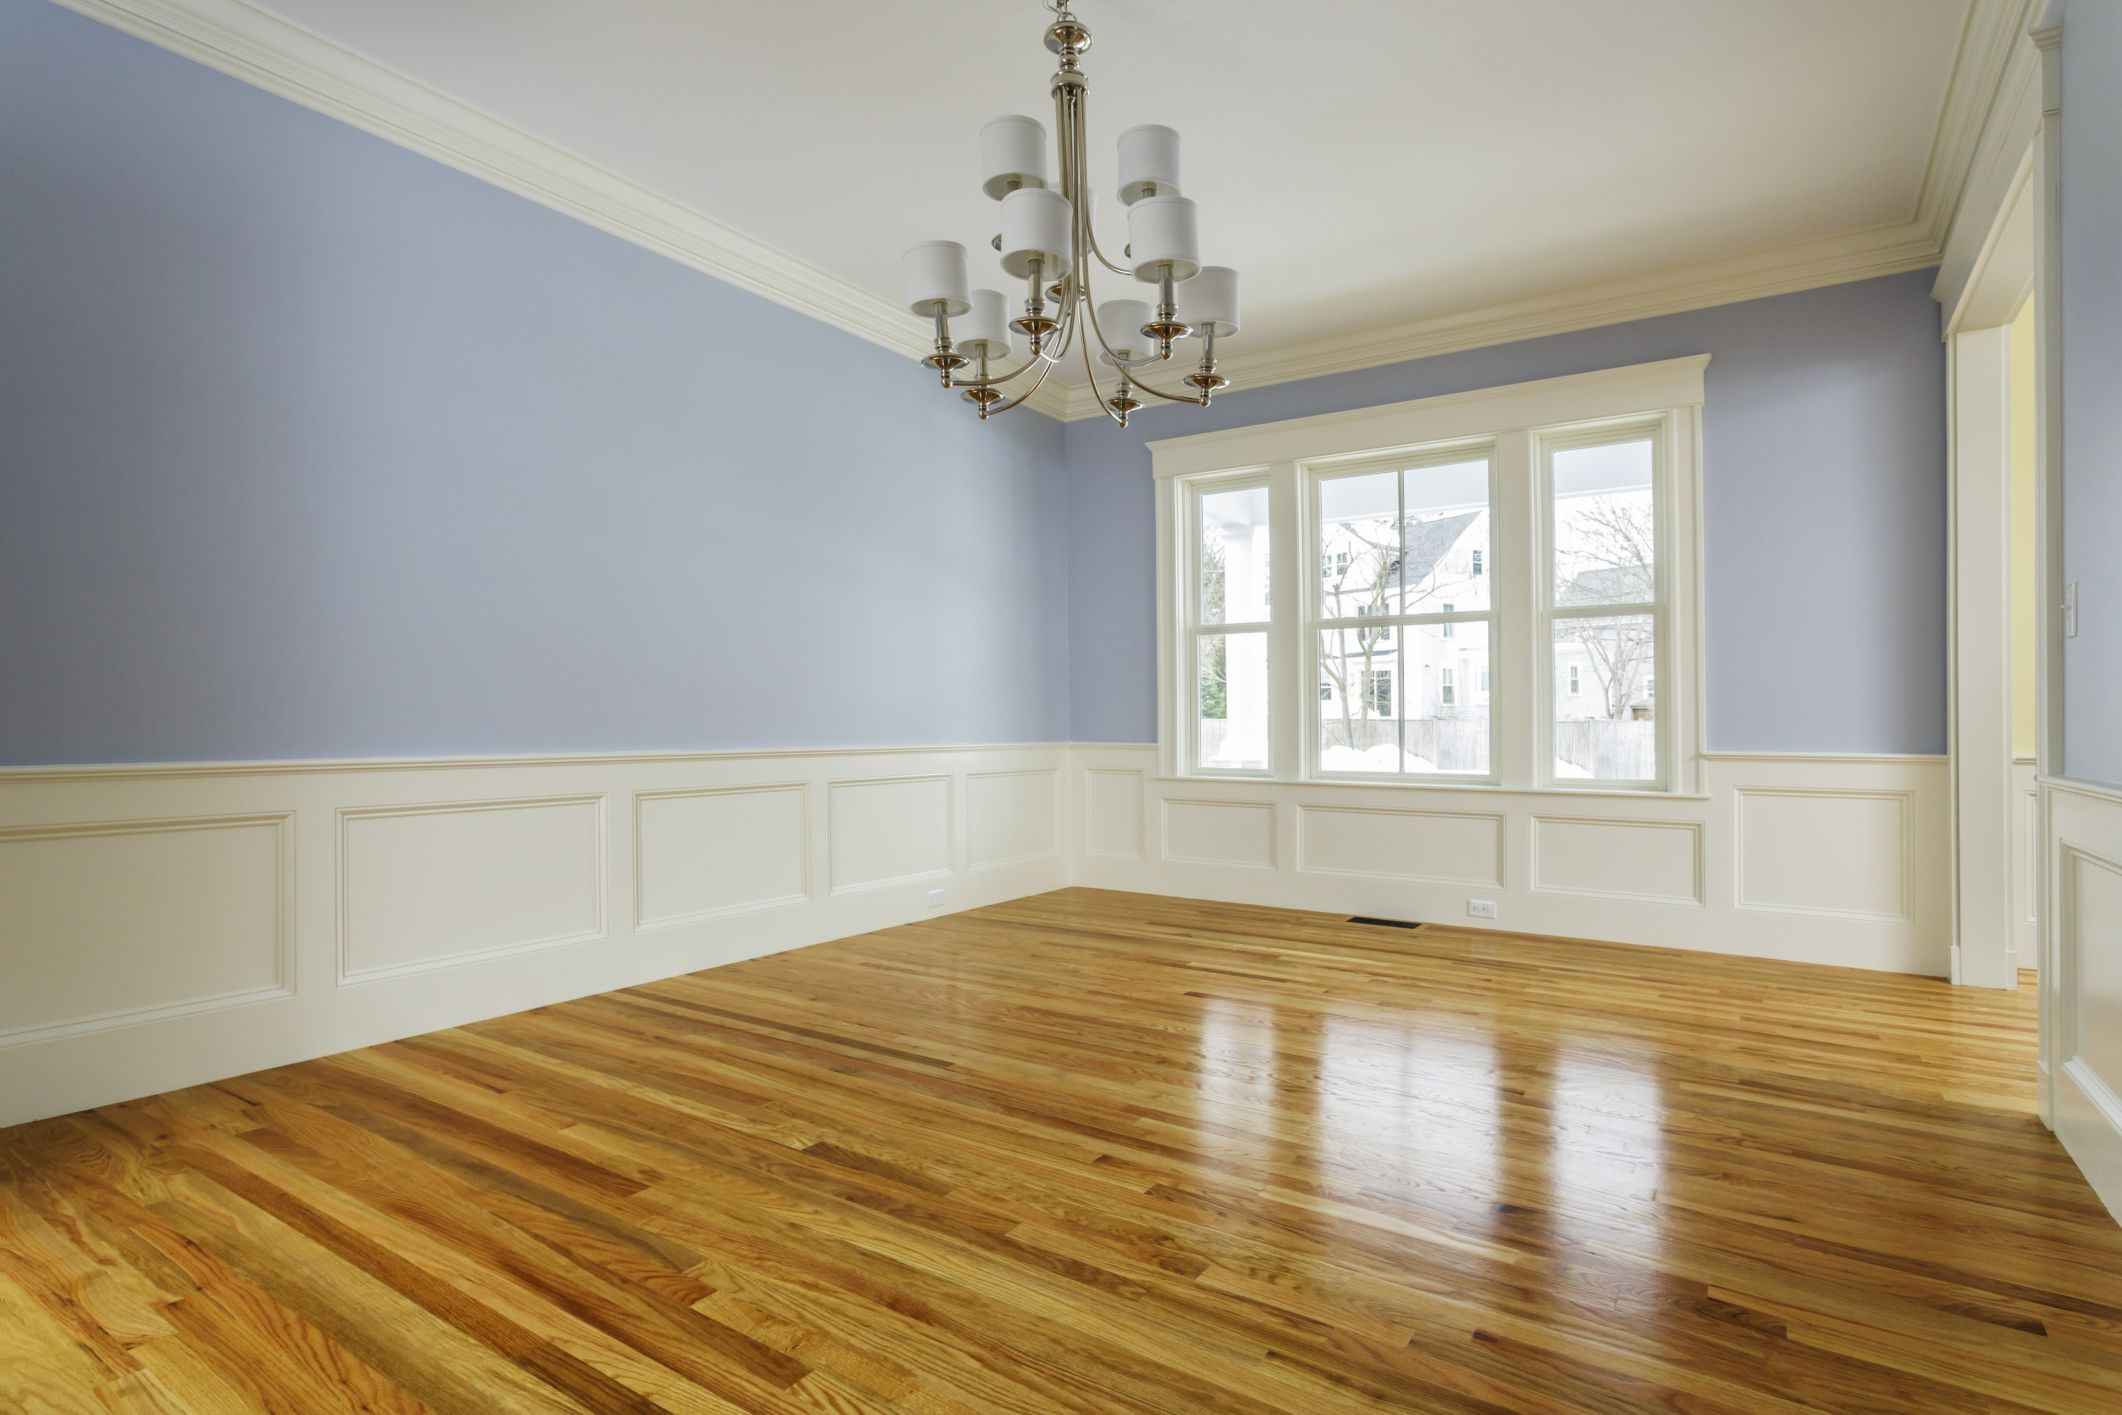 hardwood floor cost for 1500 sq ft of the cost to refinish hardwood floors pertaining to 168686572 highres 56a2fd773df78cf7727b6cb3